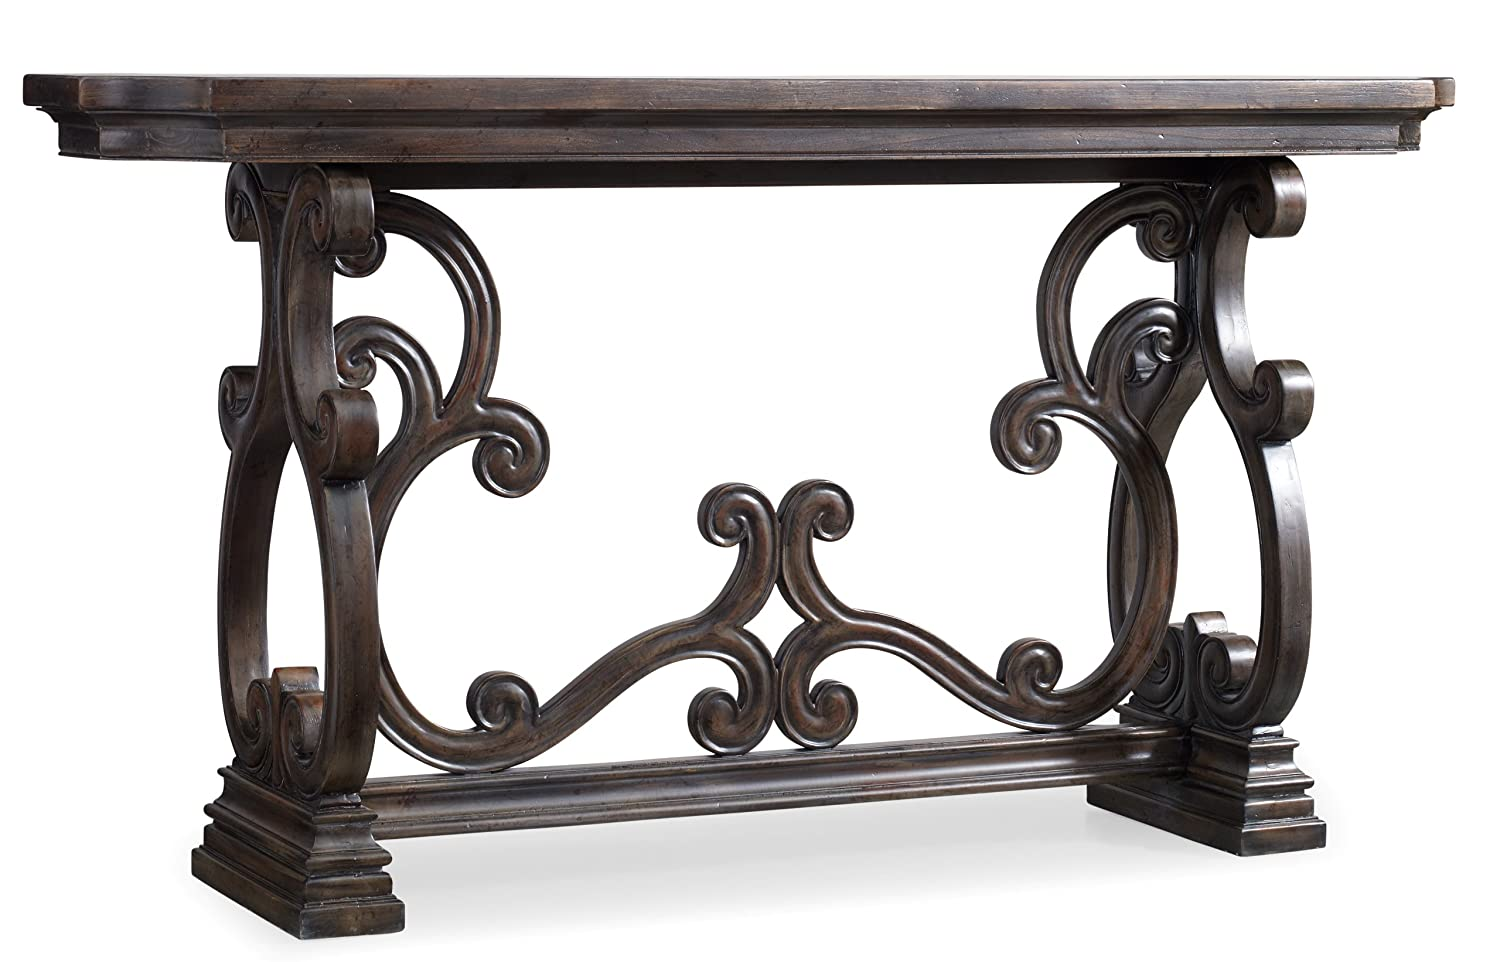 Amazon.com: Hooker Furniture DaValle Scroll Console Table: Kitchen U0026 Dining